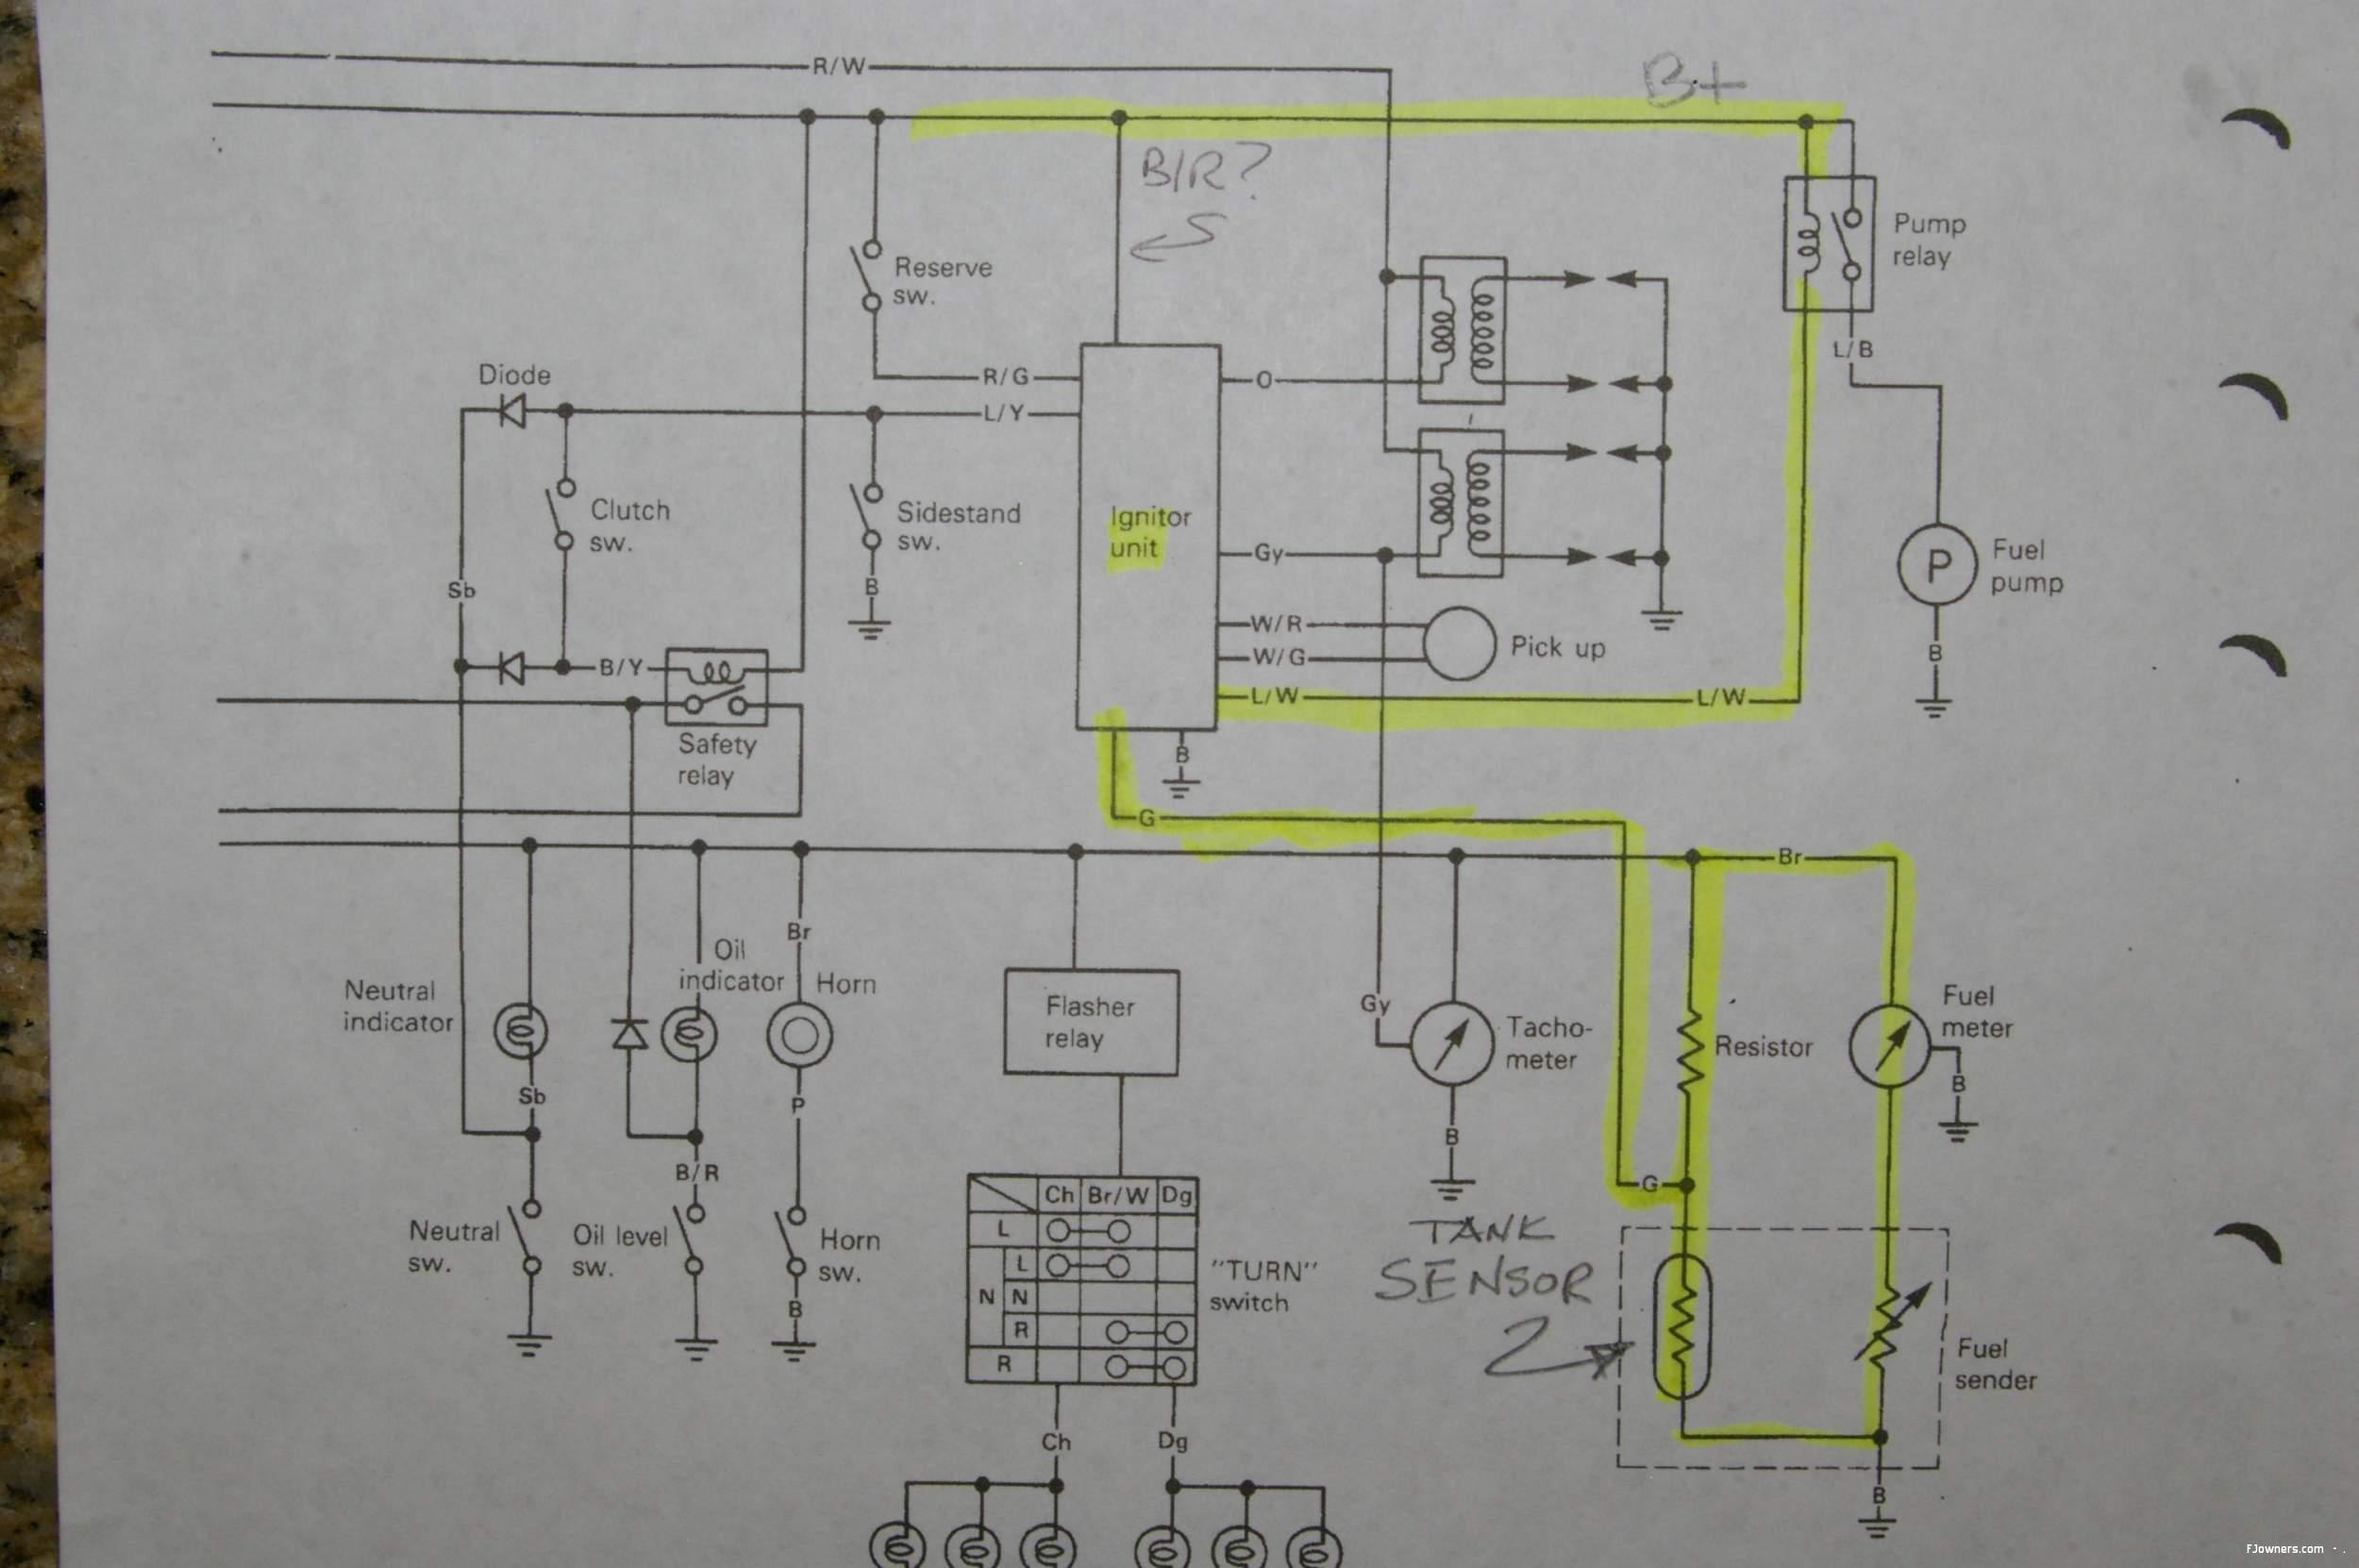 atc wiring diagram similiar tao tao 125cc wiring diagram keywords tao tao 150 atv wiring diagram honda atc 110